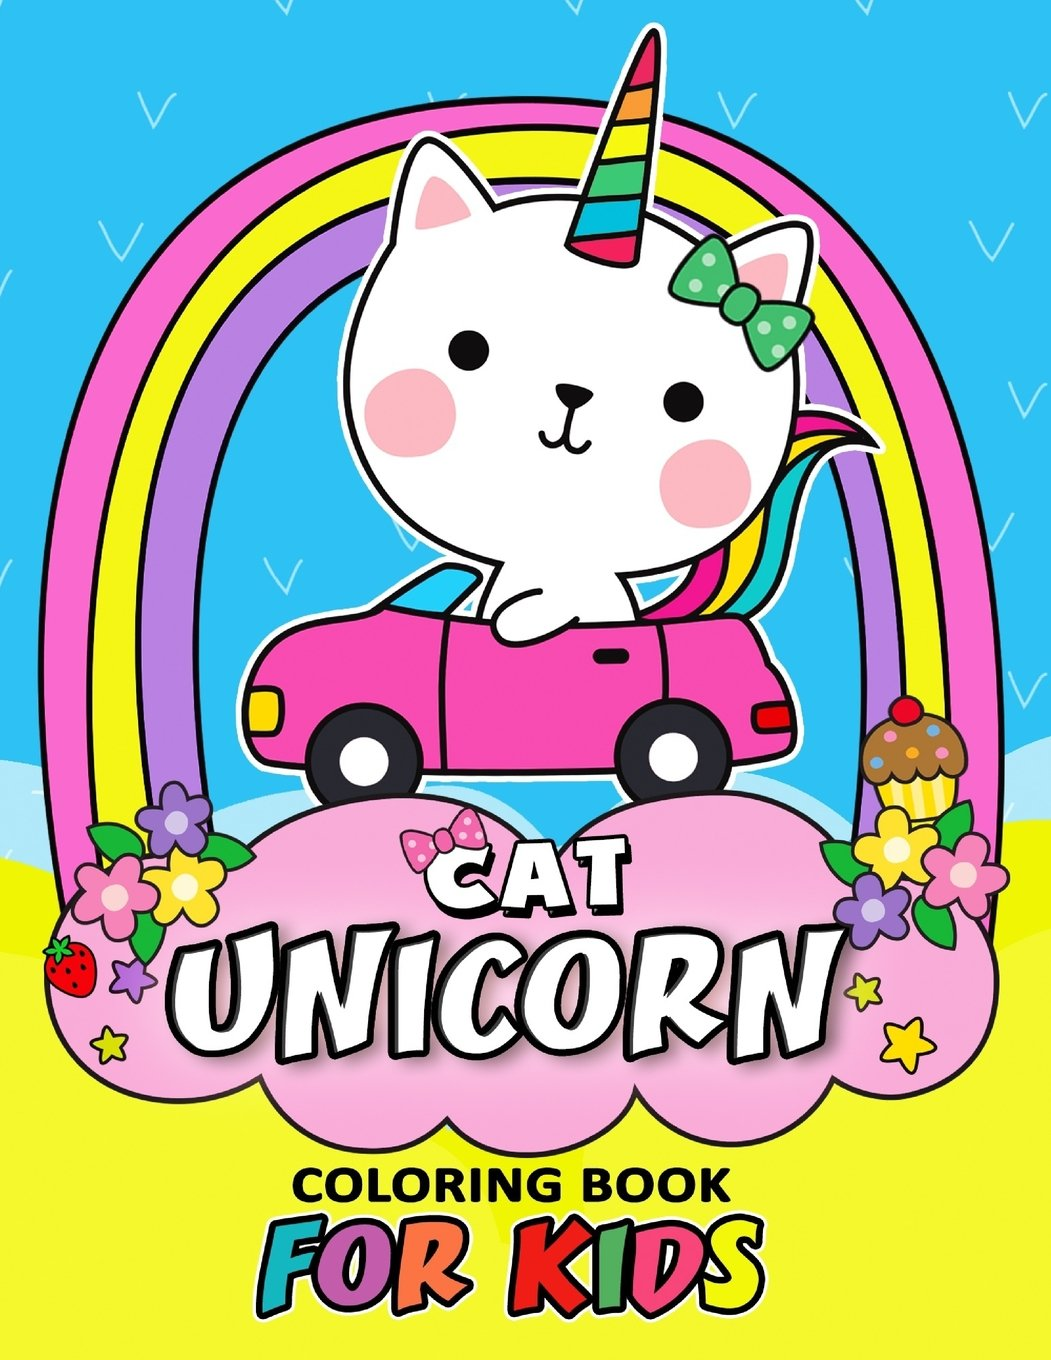 Amazon Com Cat Unicorn Coloring Book For Kids Coloring Book Easy Fun Beautiful Coloring Pages Girls Teen And Adults 9781986752015 Kodomo Publishing Books